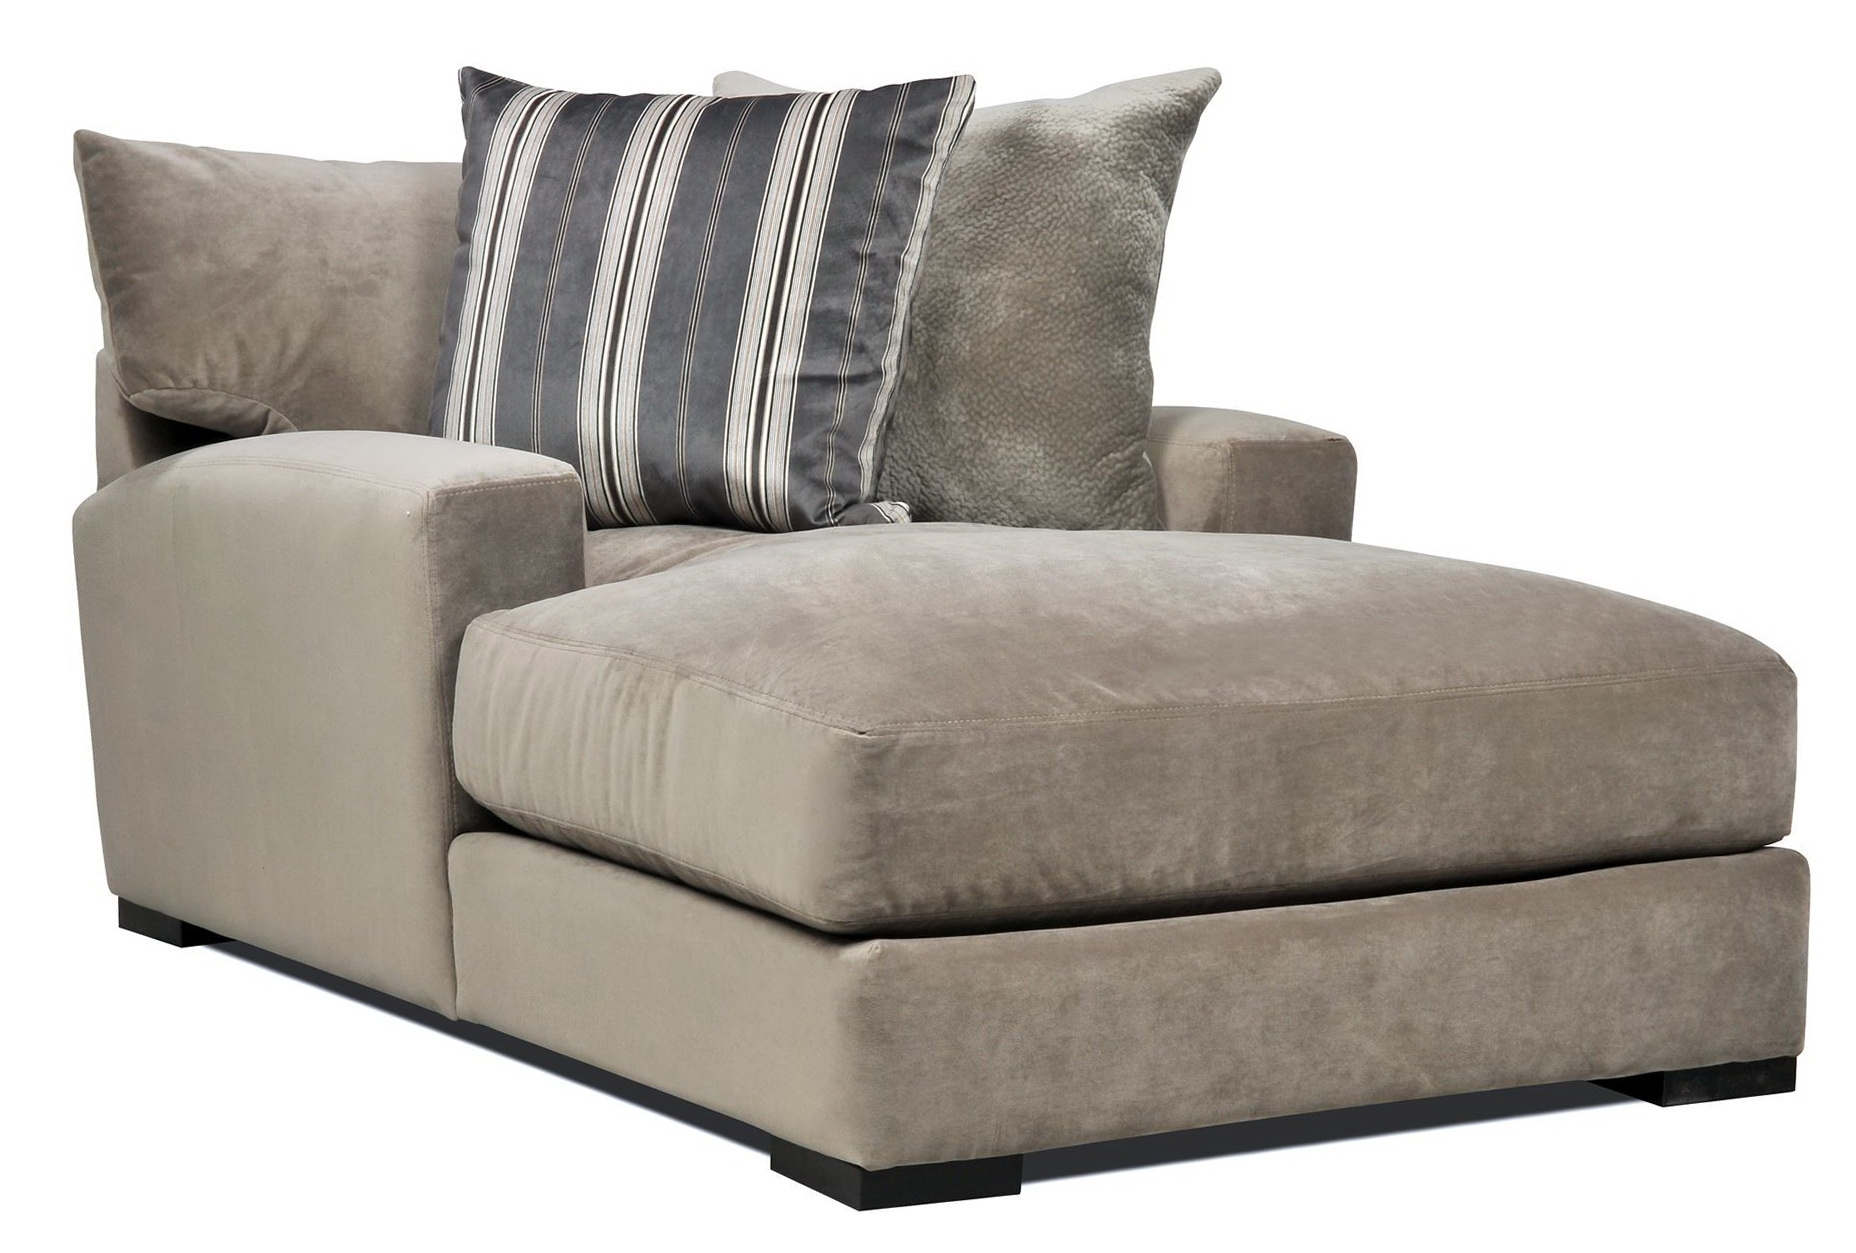 Newest 2 Person Chaise Lounges With Regard To Double Wide Chaise Lounge Indoor With 2 Cushions (View 3 of 15)